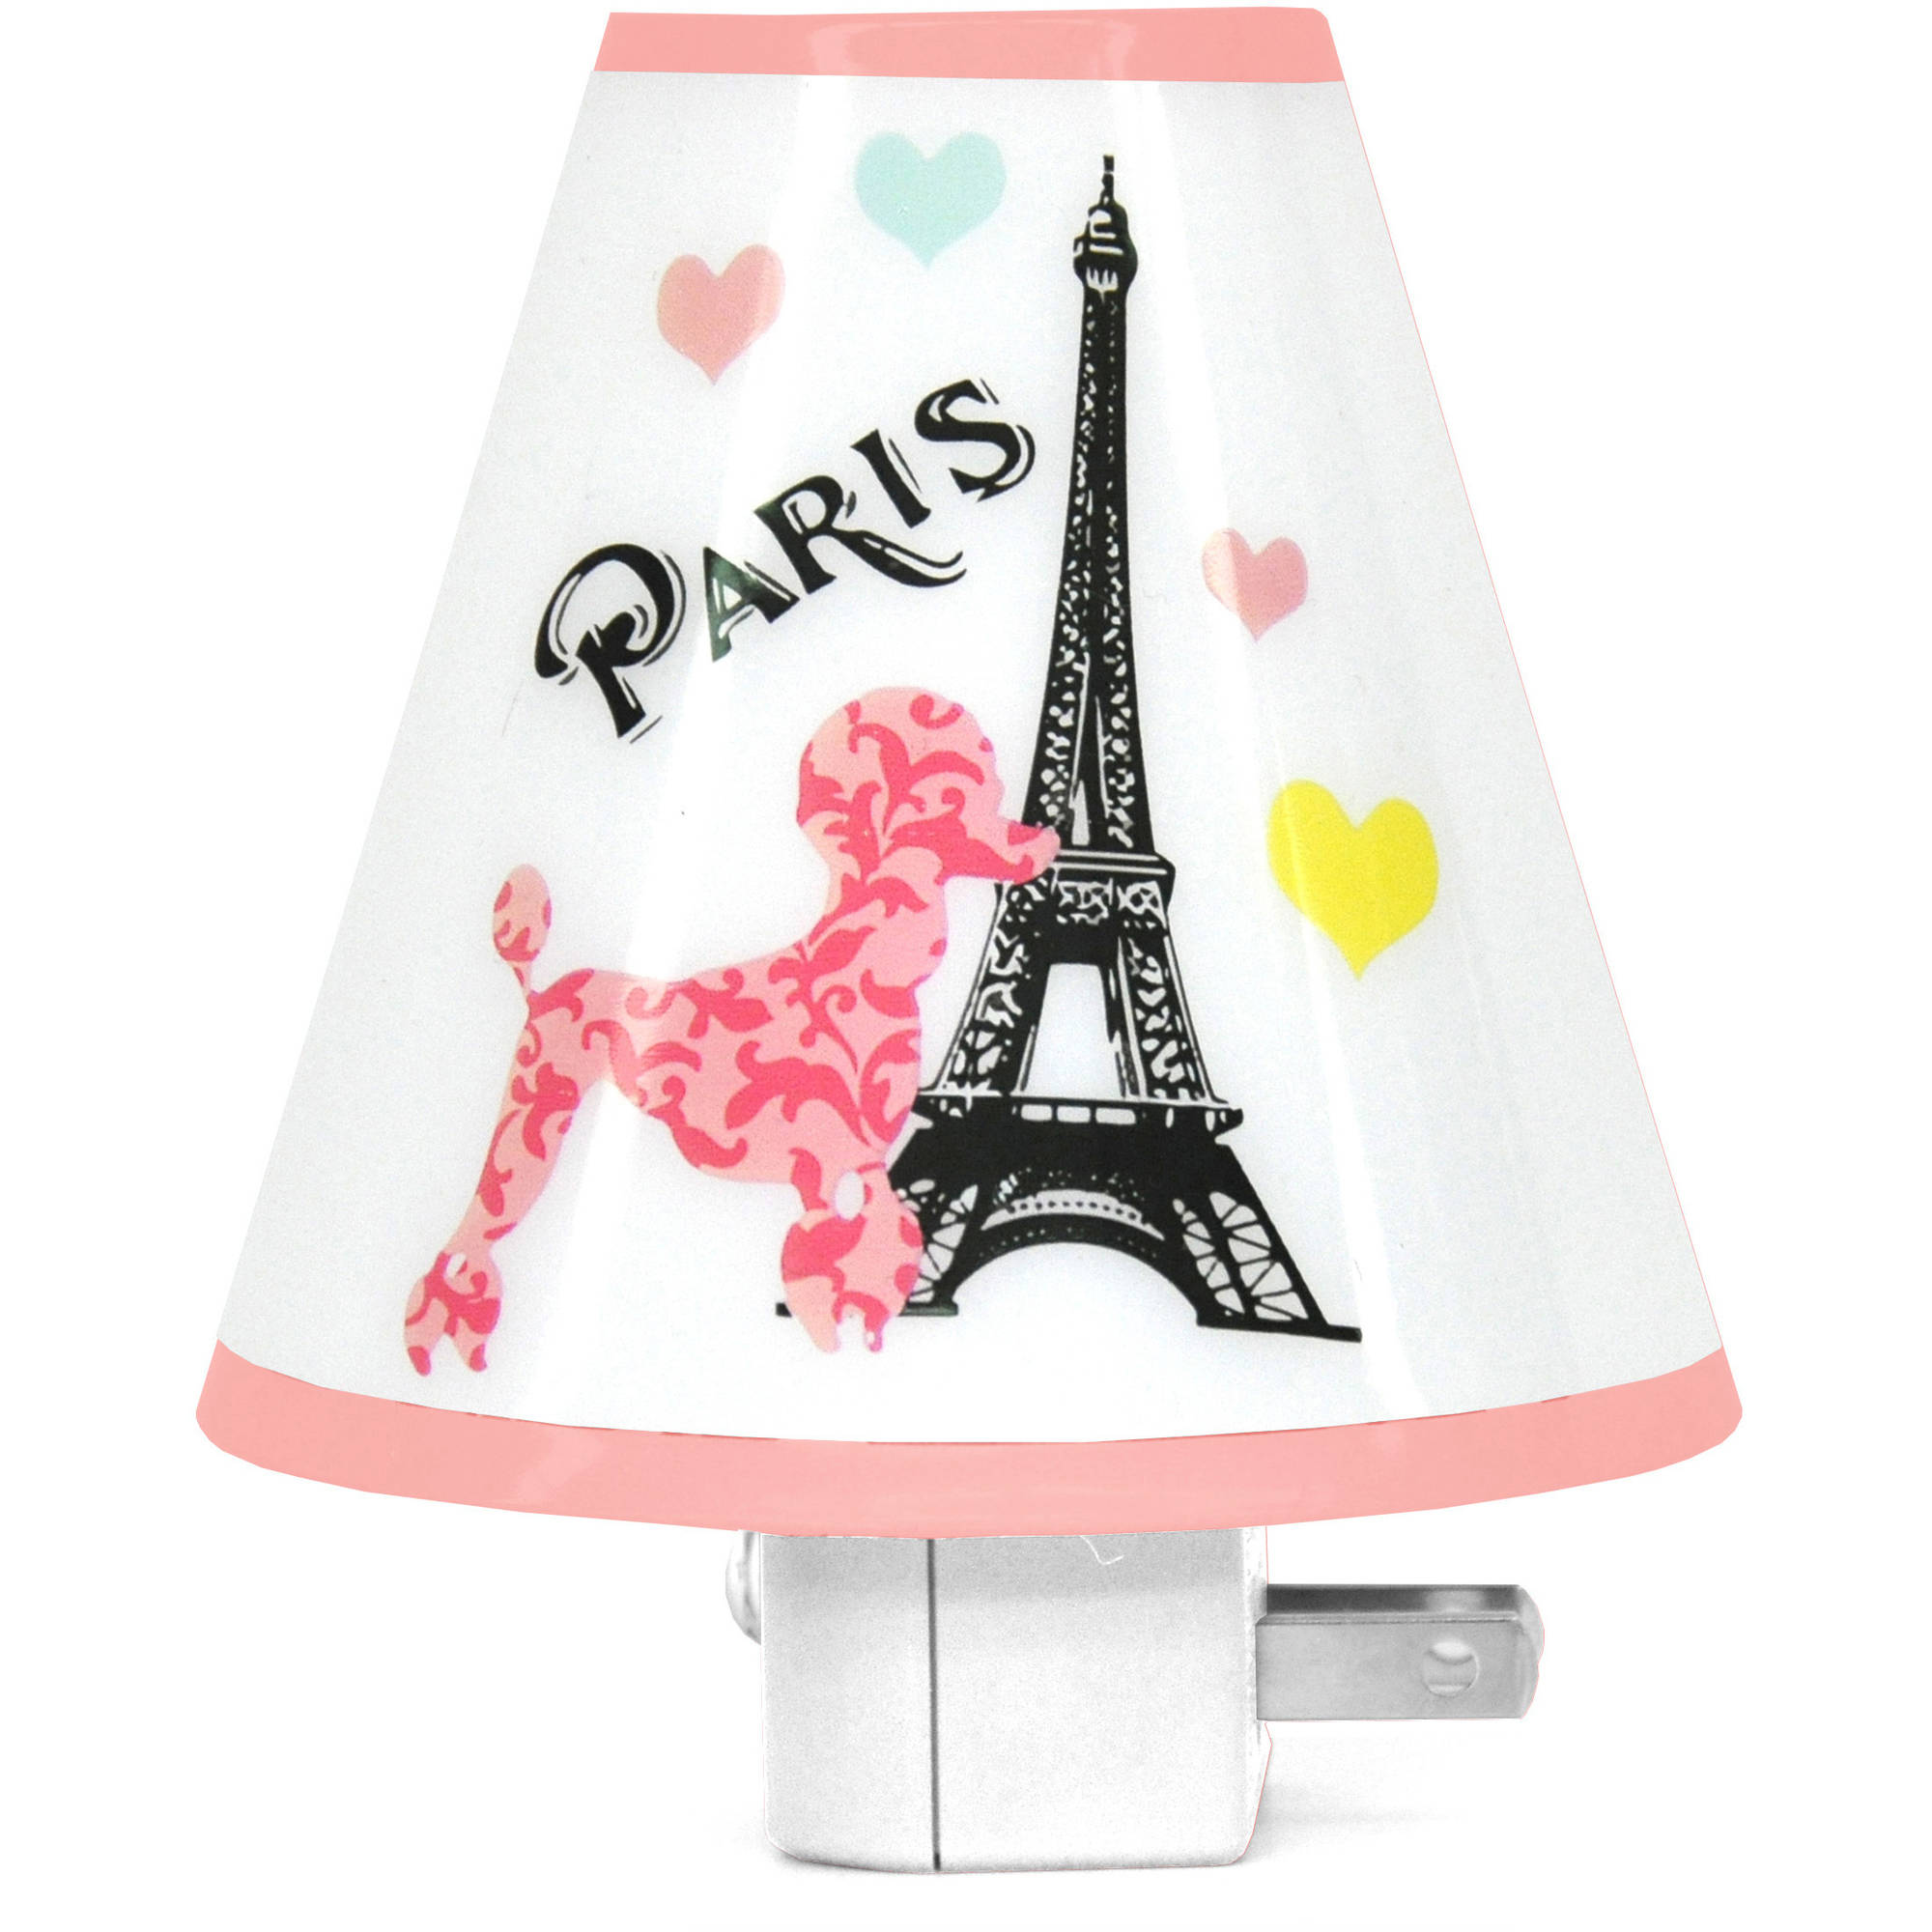 Mainstays Kids Paris Shade Nightlight